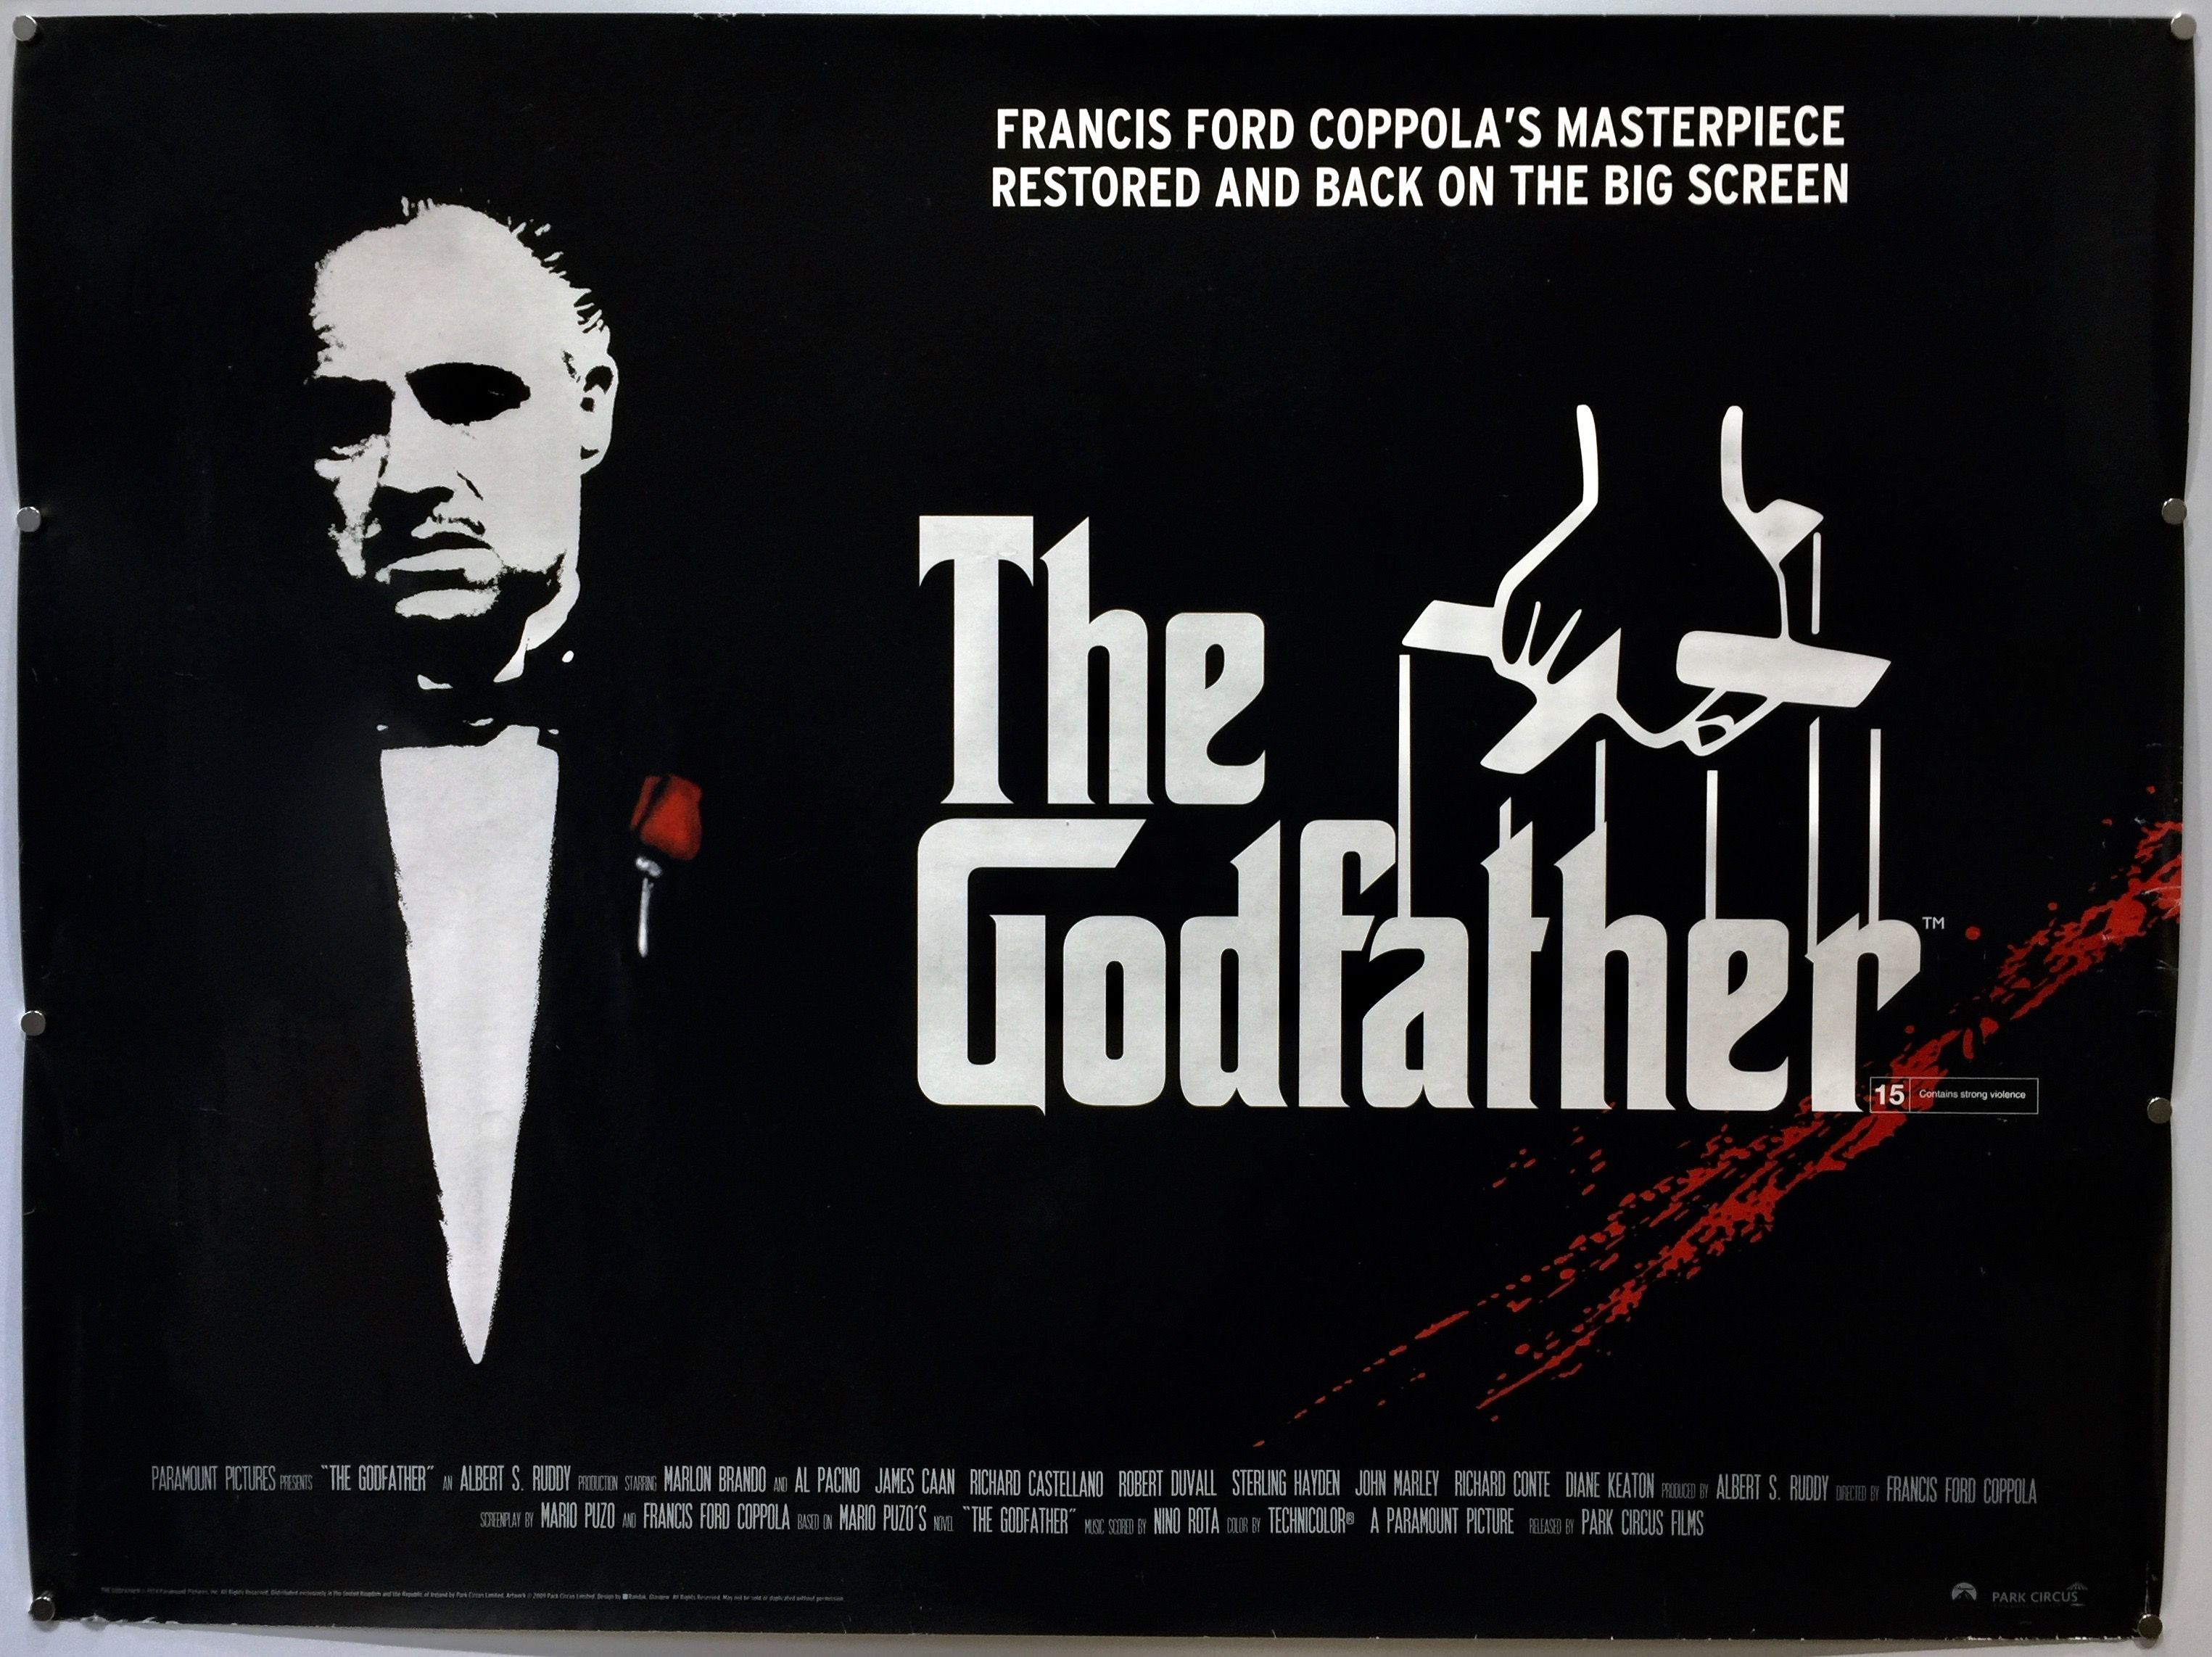 The Godfather | The godfather, Movie posters vintage, Francis ford ...